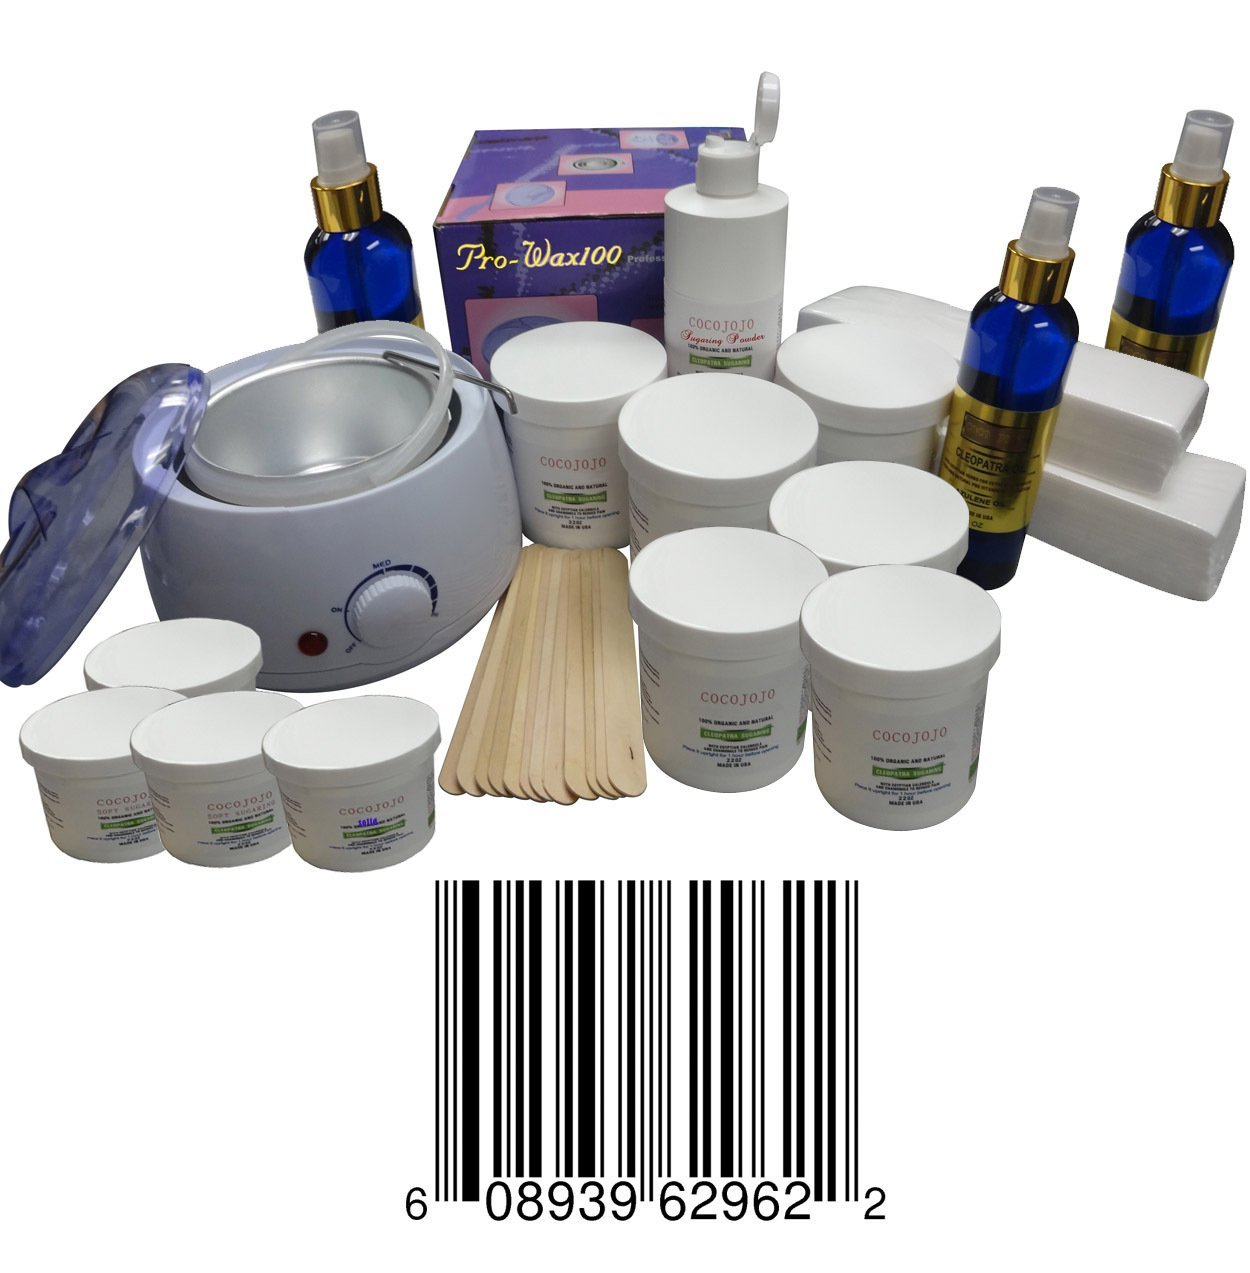 Sugaring Start up Big Kit , 1 Sugar Wax Warmer + 6 Jars of 22 Oz Each Standard Sugaring Hair Removal 100% Natural Paste (Standard Sugaring to Use with Hands or Spatula or Strips) + 3 Jars of 12 Oz Each of Soft Sugaring (To Use with Strips) + 1 Jar 12 Oz of Solid Sugaring + 12 Wood Spatulas + 8 Oz